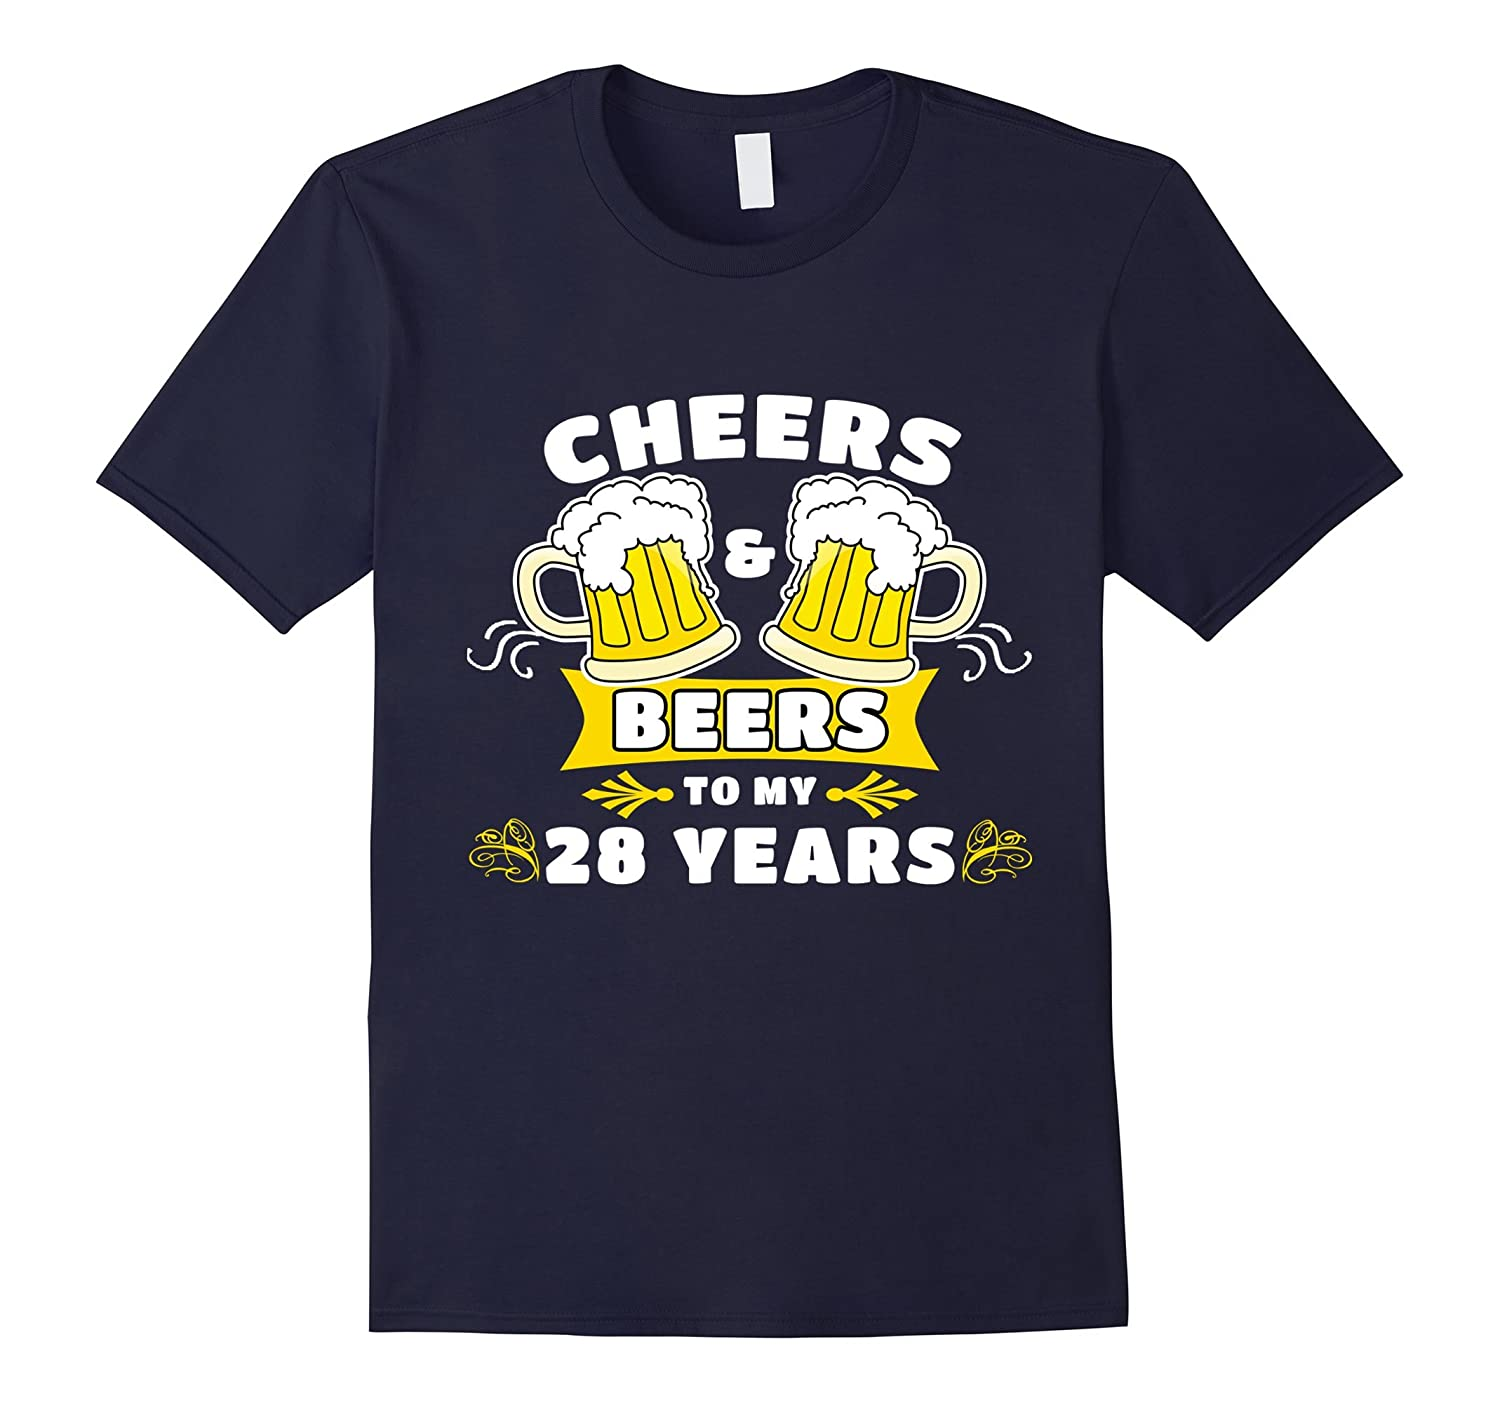 Cheers And Beers To My 28 Years T-Shirt 28th Birthday Gift-BN